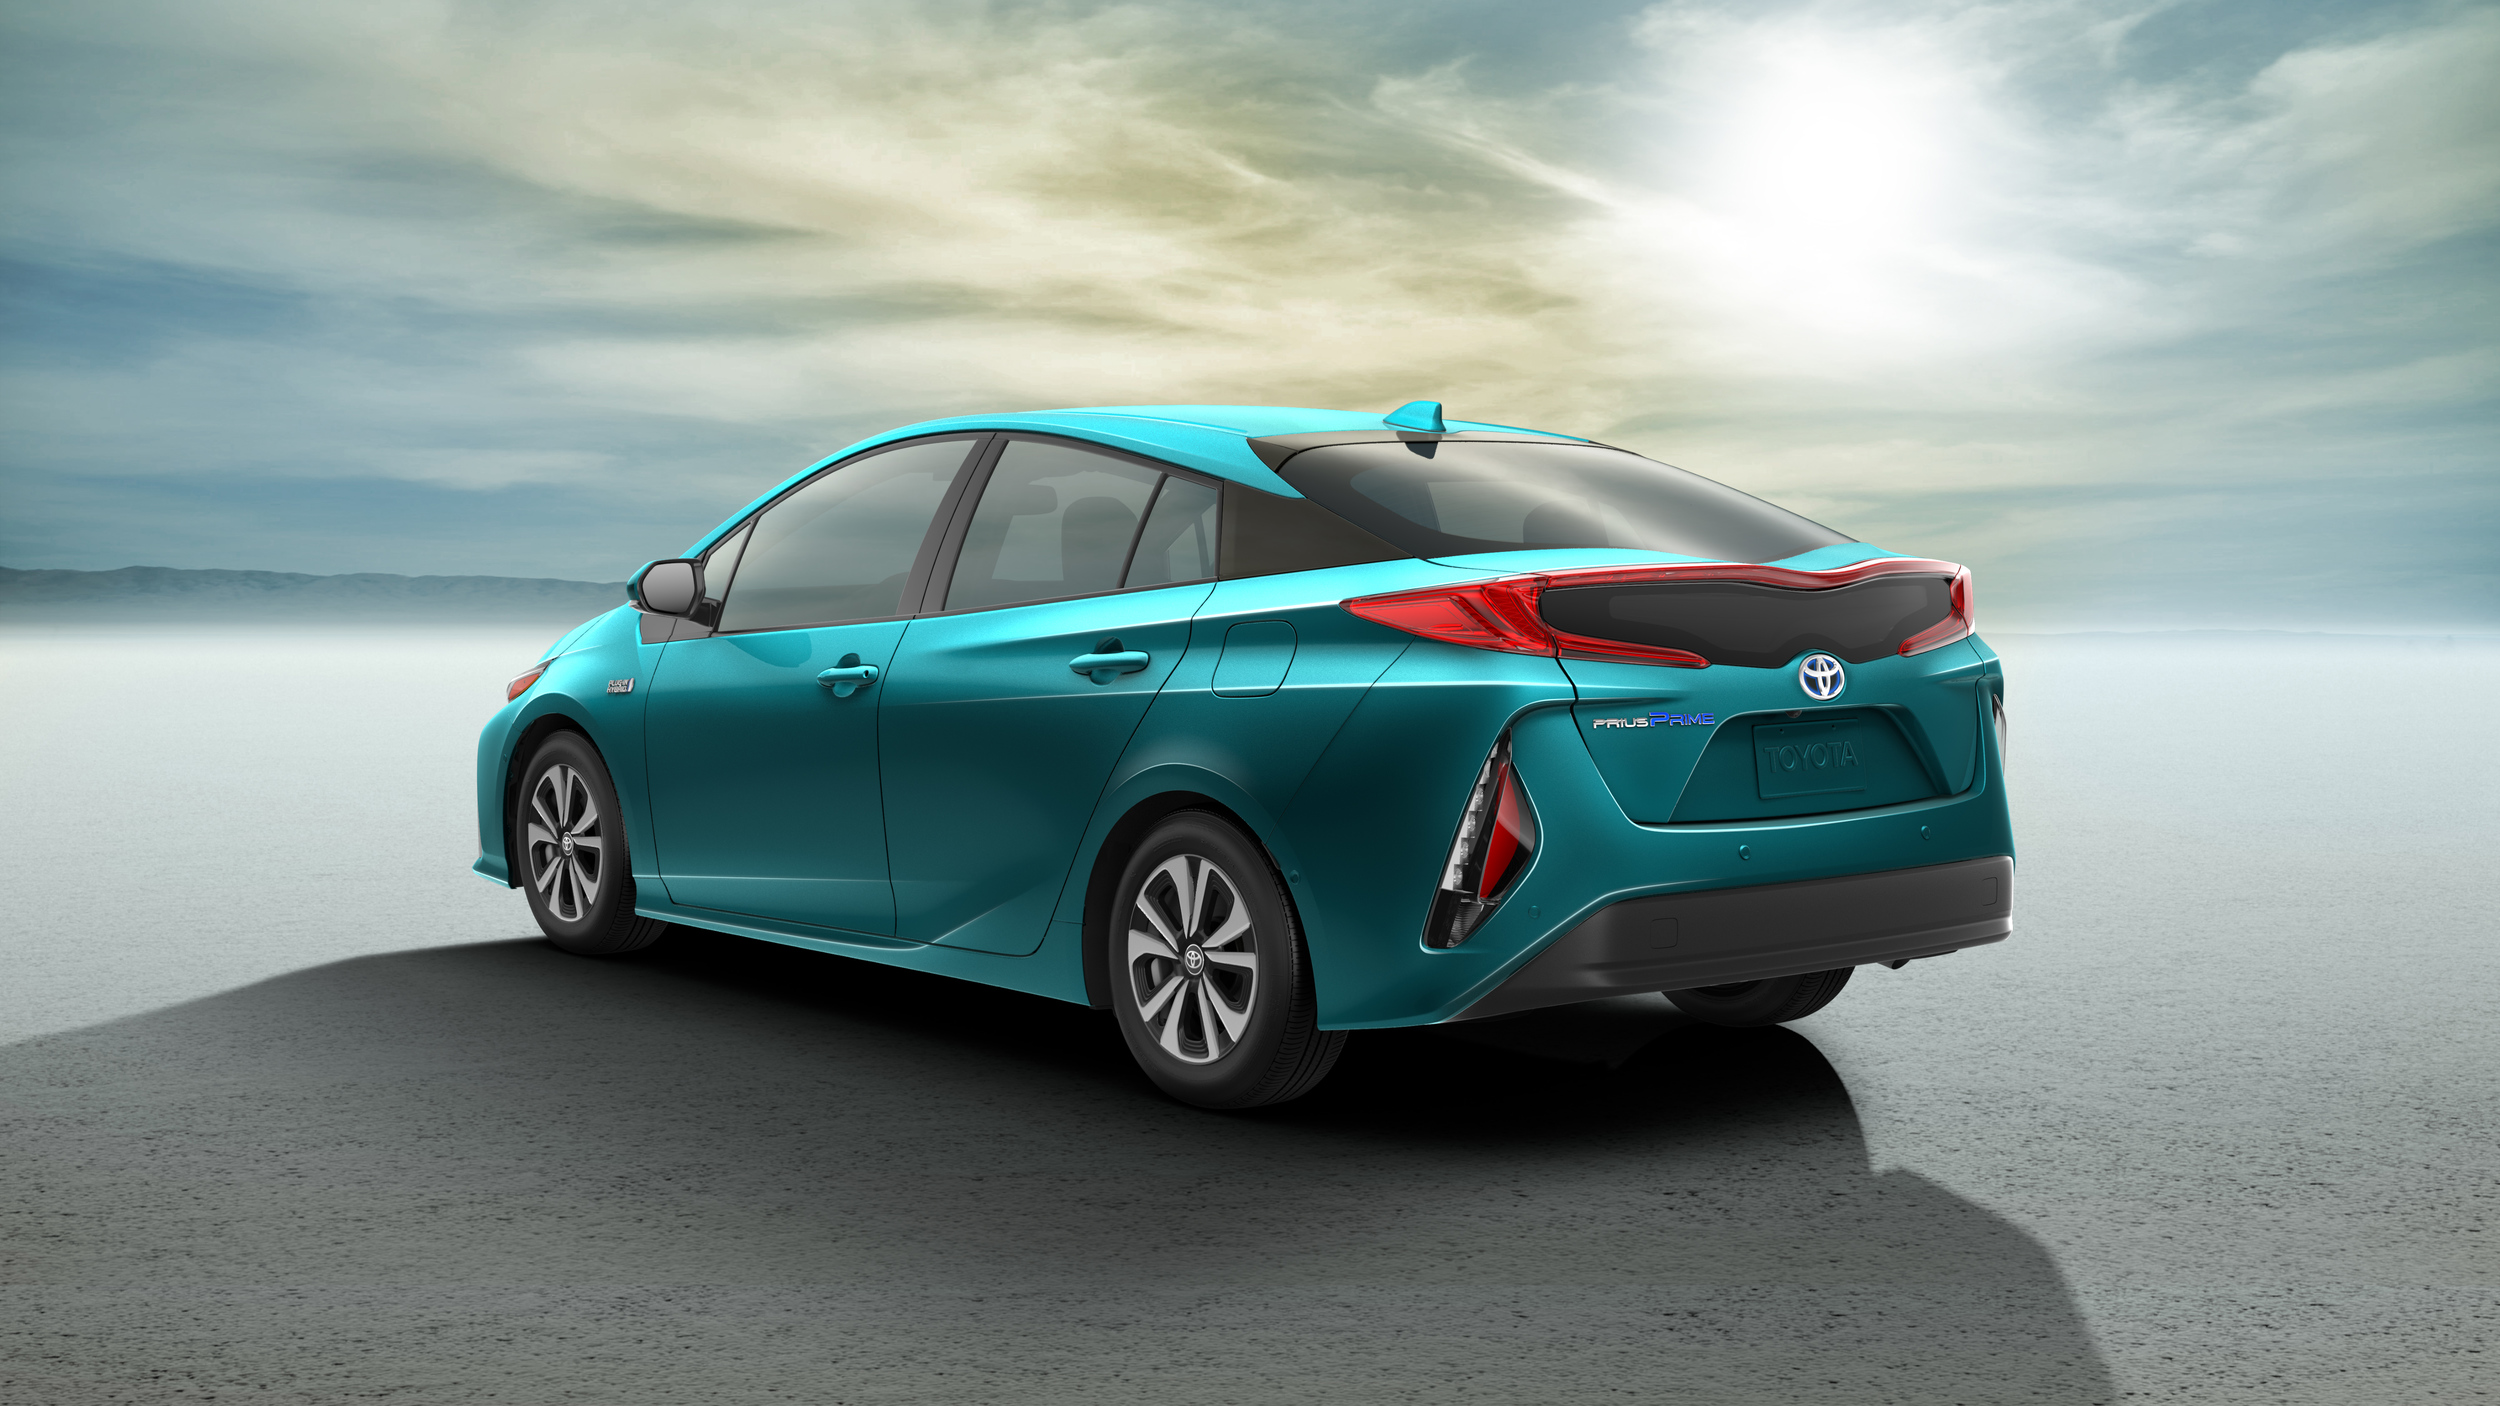 2017 toyota prius prime plug in hybrid model revealed at. Black Bedroom Furniture Sets. Home Design Ideas